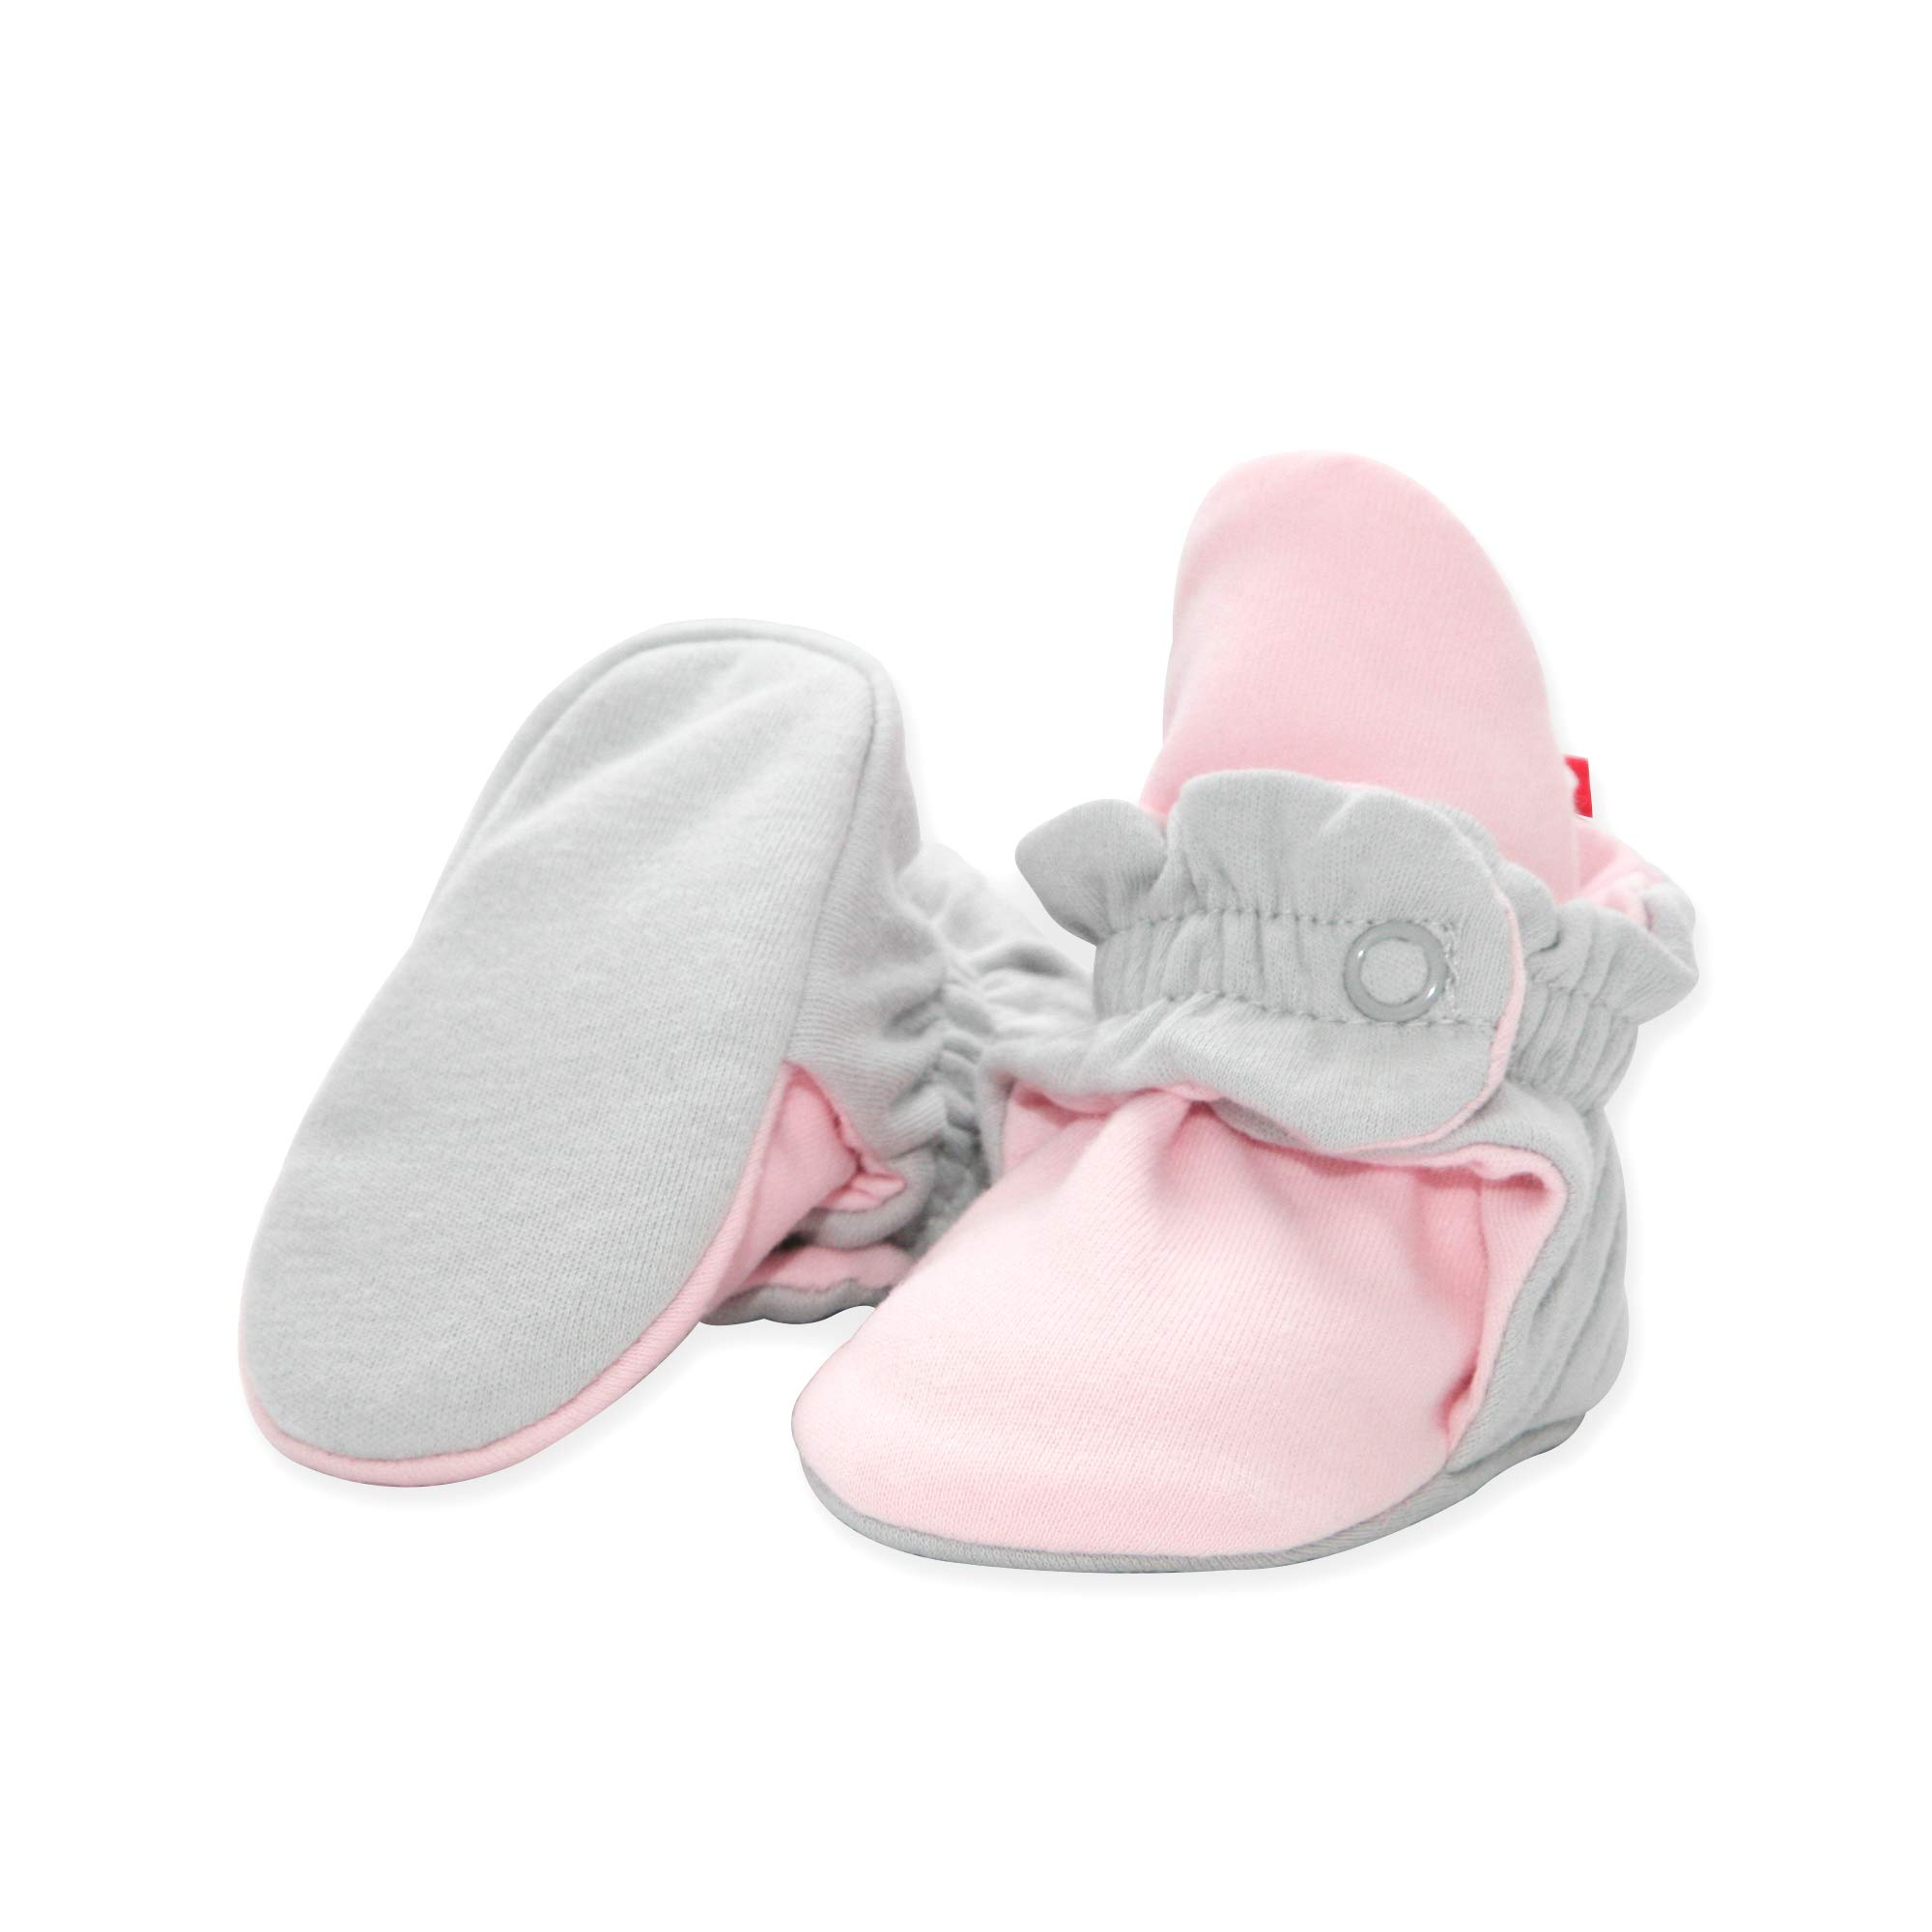 Zutano Organic Cotton Baby Booties with Organic Cotton Lining, Unisex, For Newborns, Infants, Babies, and Toddlers, Light Gray/Baby Pink, 6M-12M by Zutano